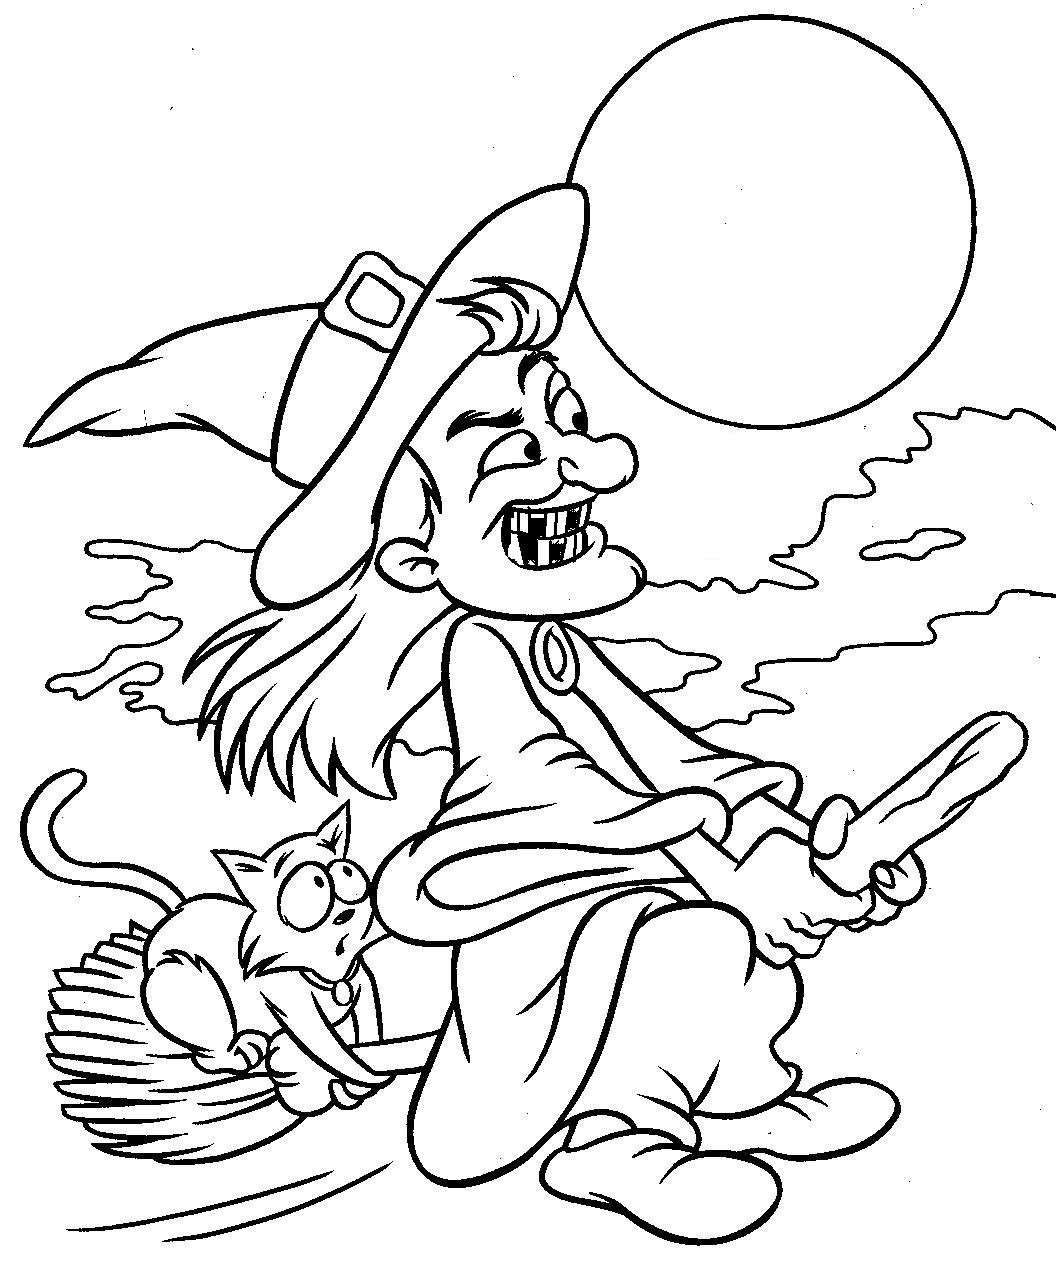 1056x1264 Halloween Witch On A Broom Coloring Pages Collection Coloring